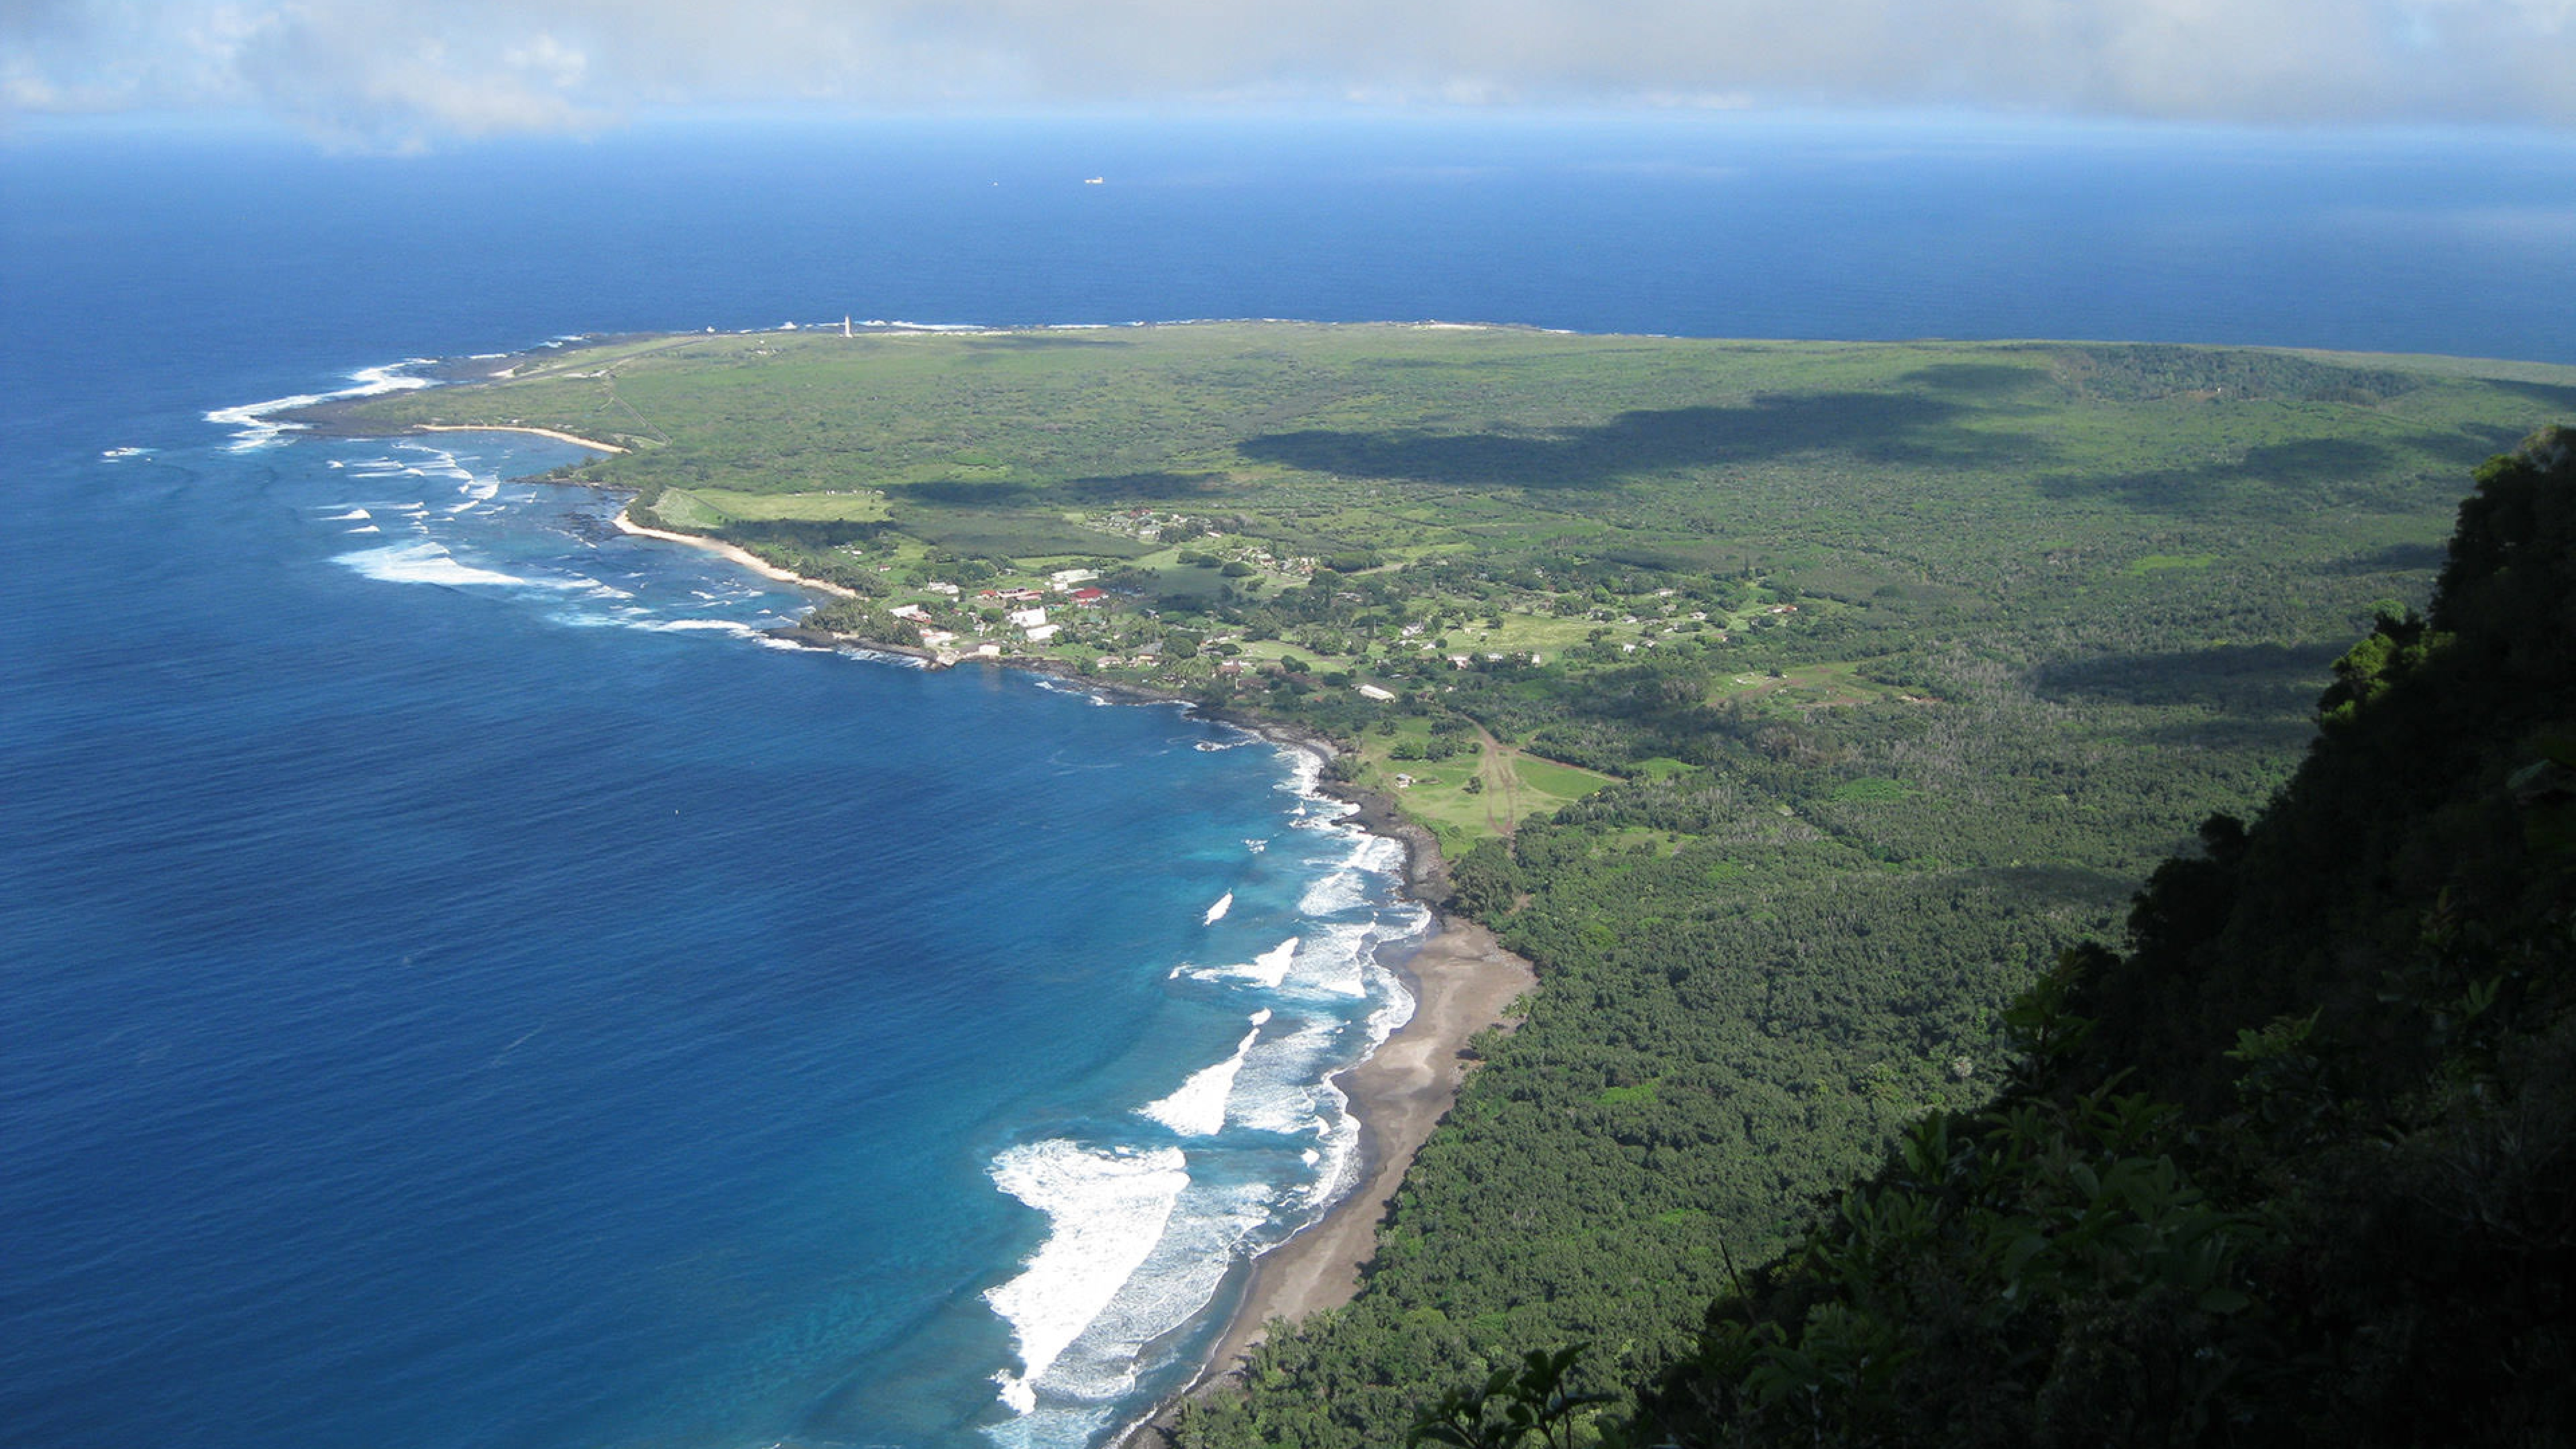 Breathtaking scenery at Kalaupapa National Park